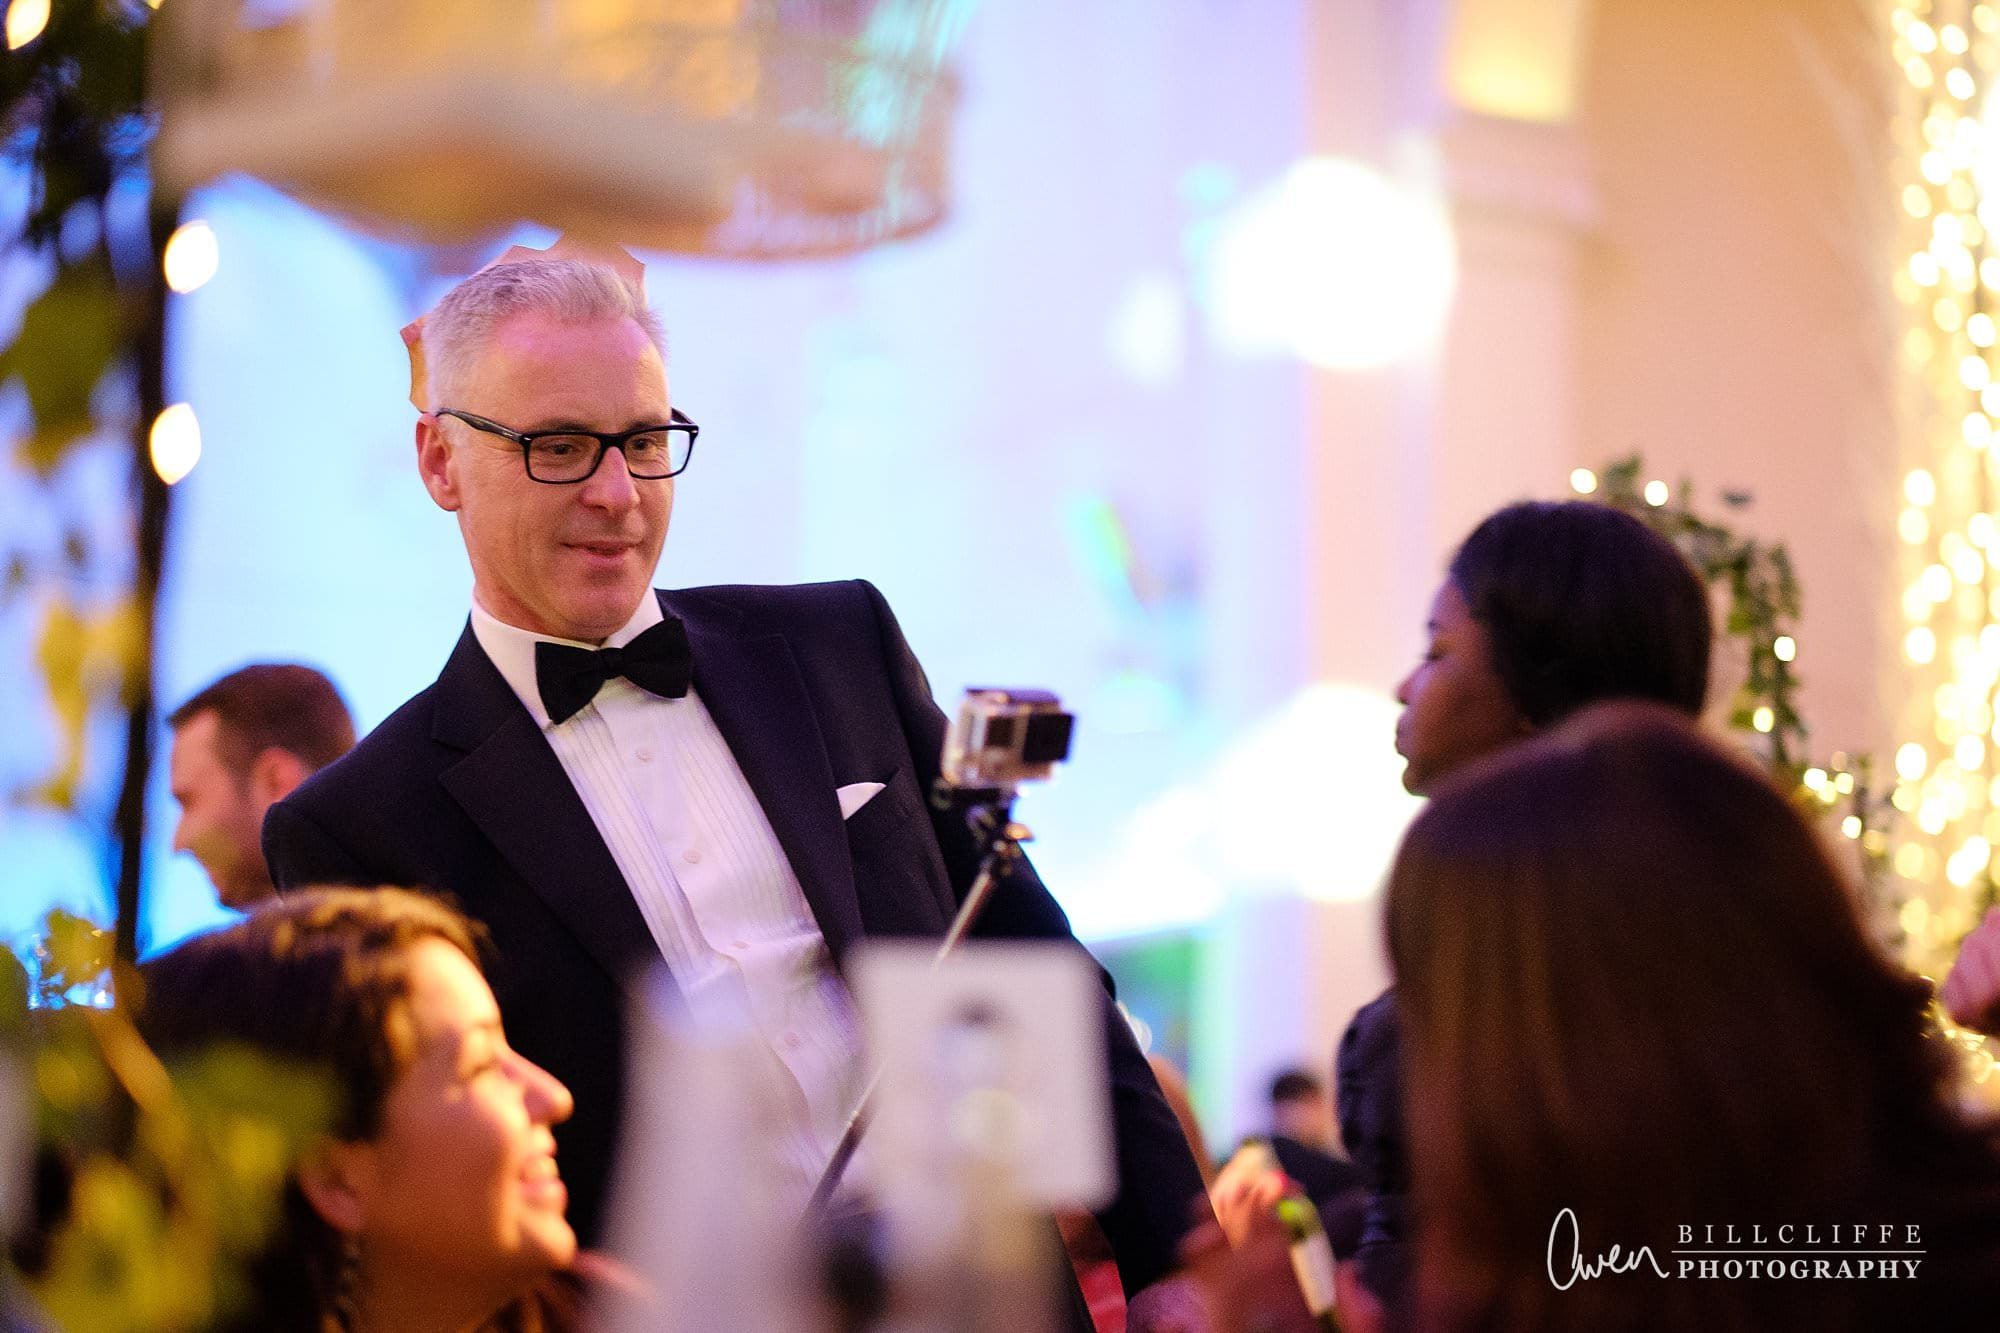 london event photographer 8 northumberland avenue mh 005 - A Christmas Party at 8 Northumberland